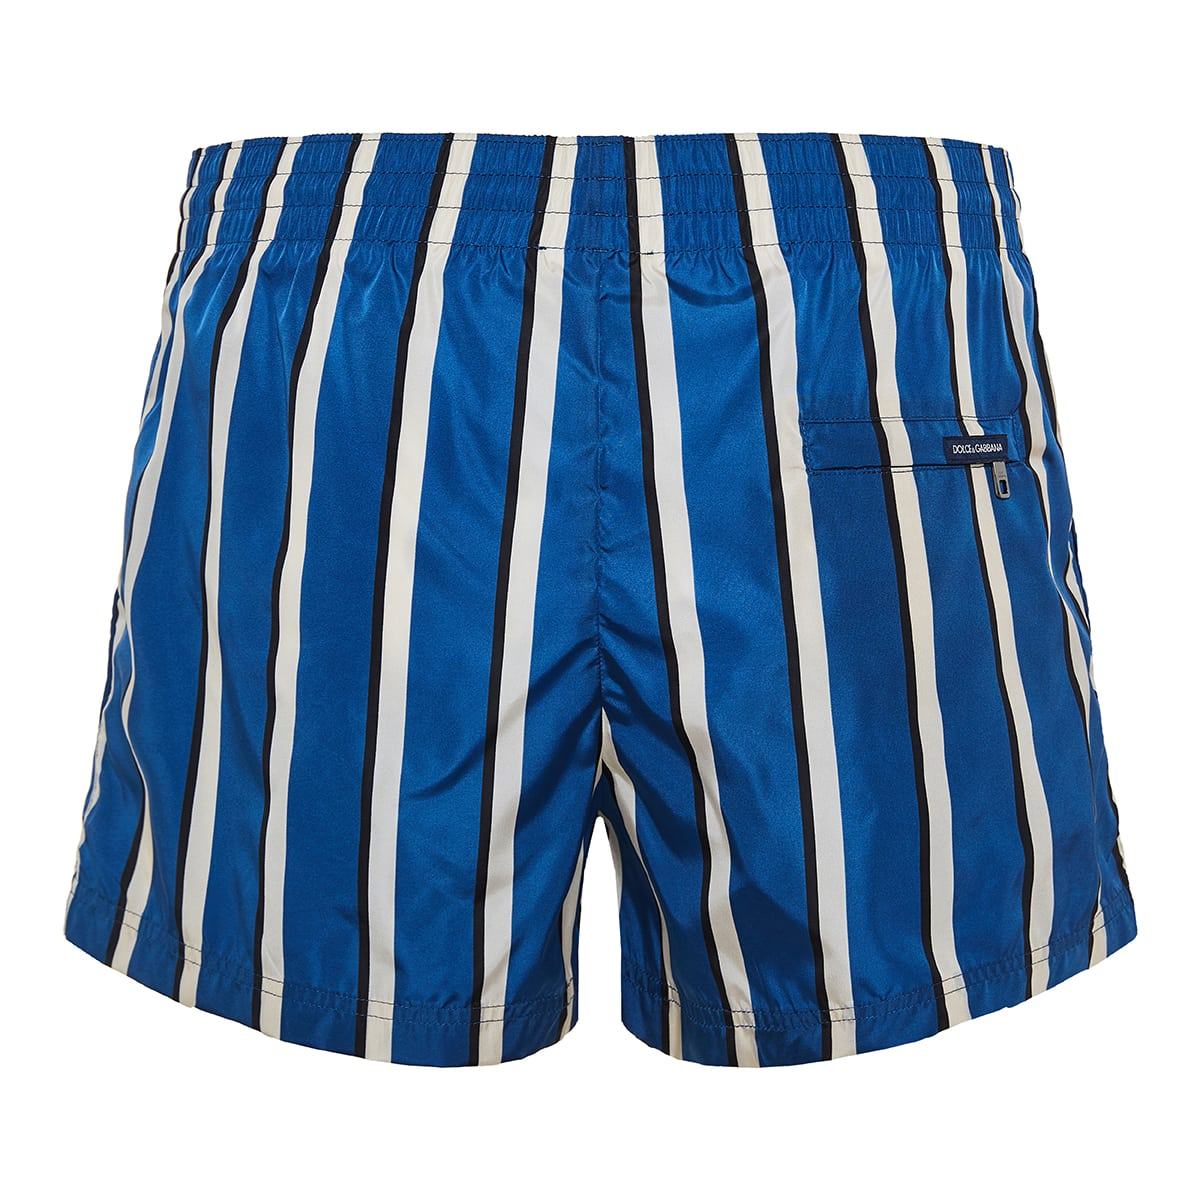 Striped nylon swim shorts